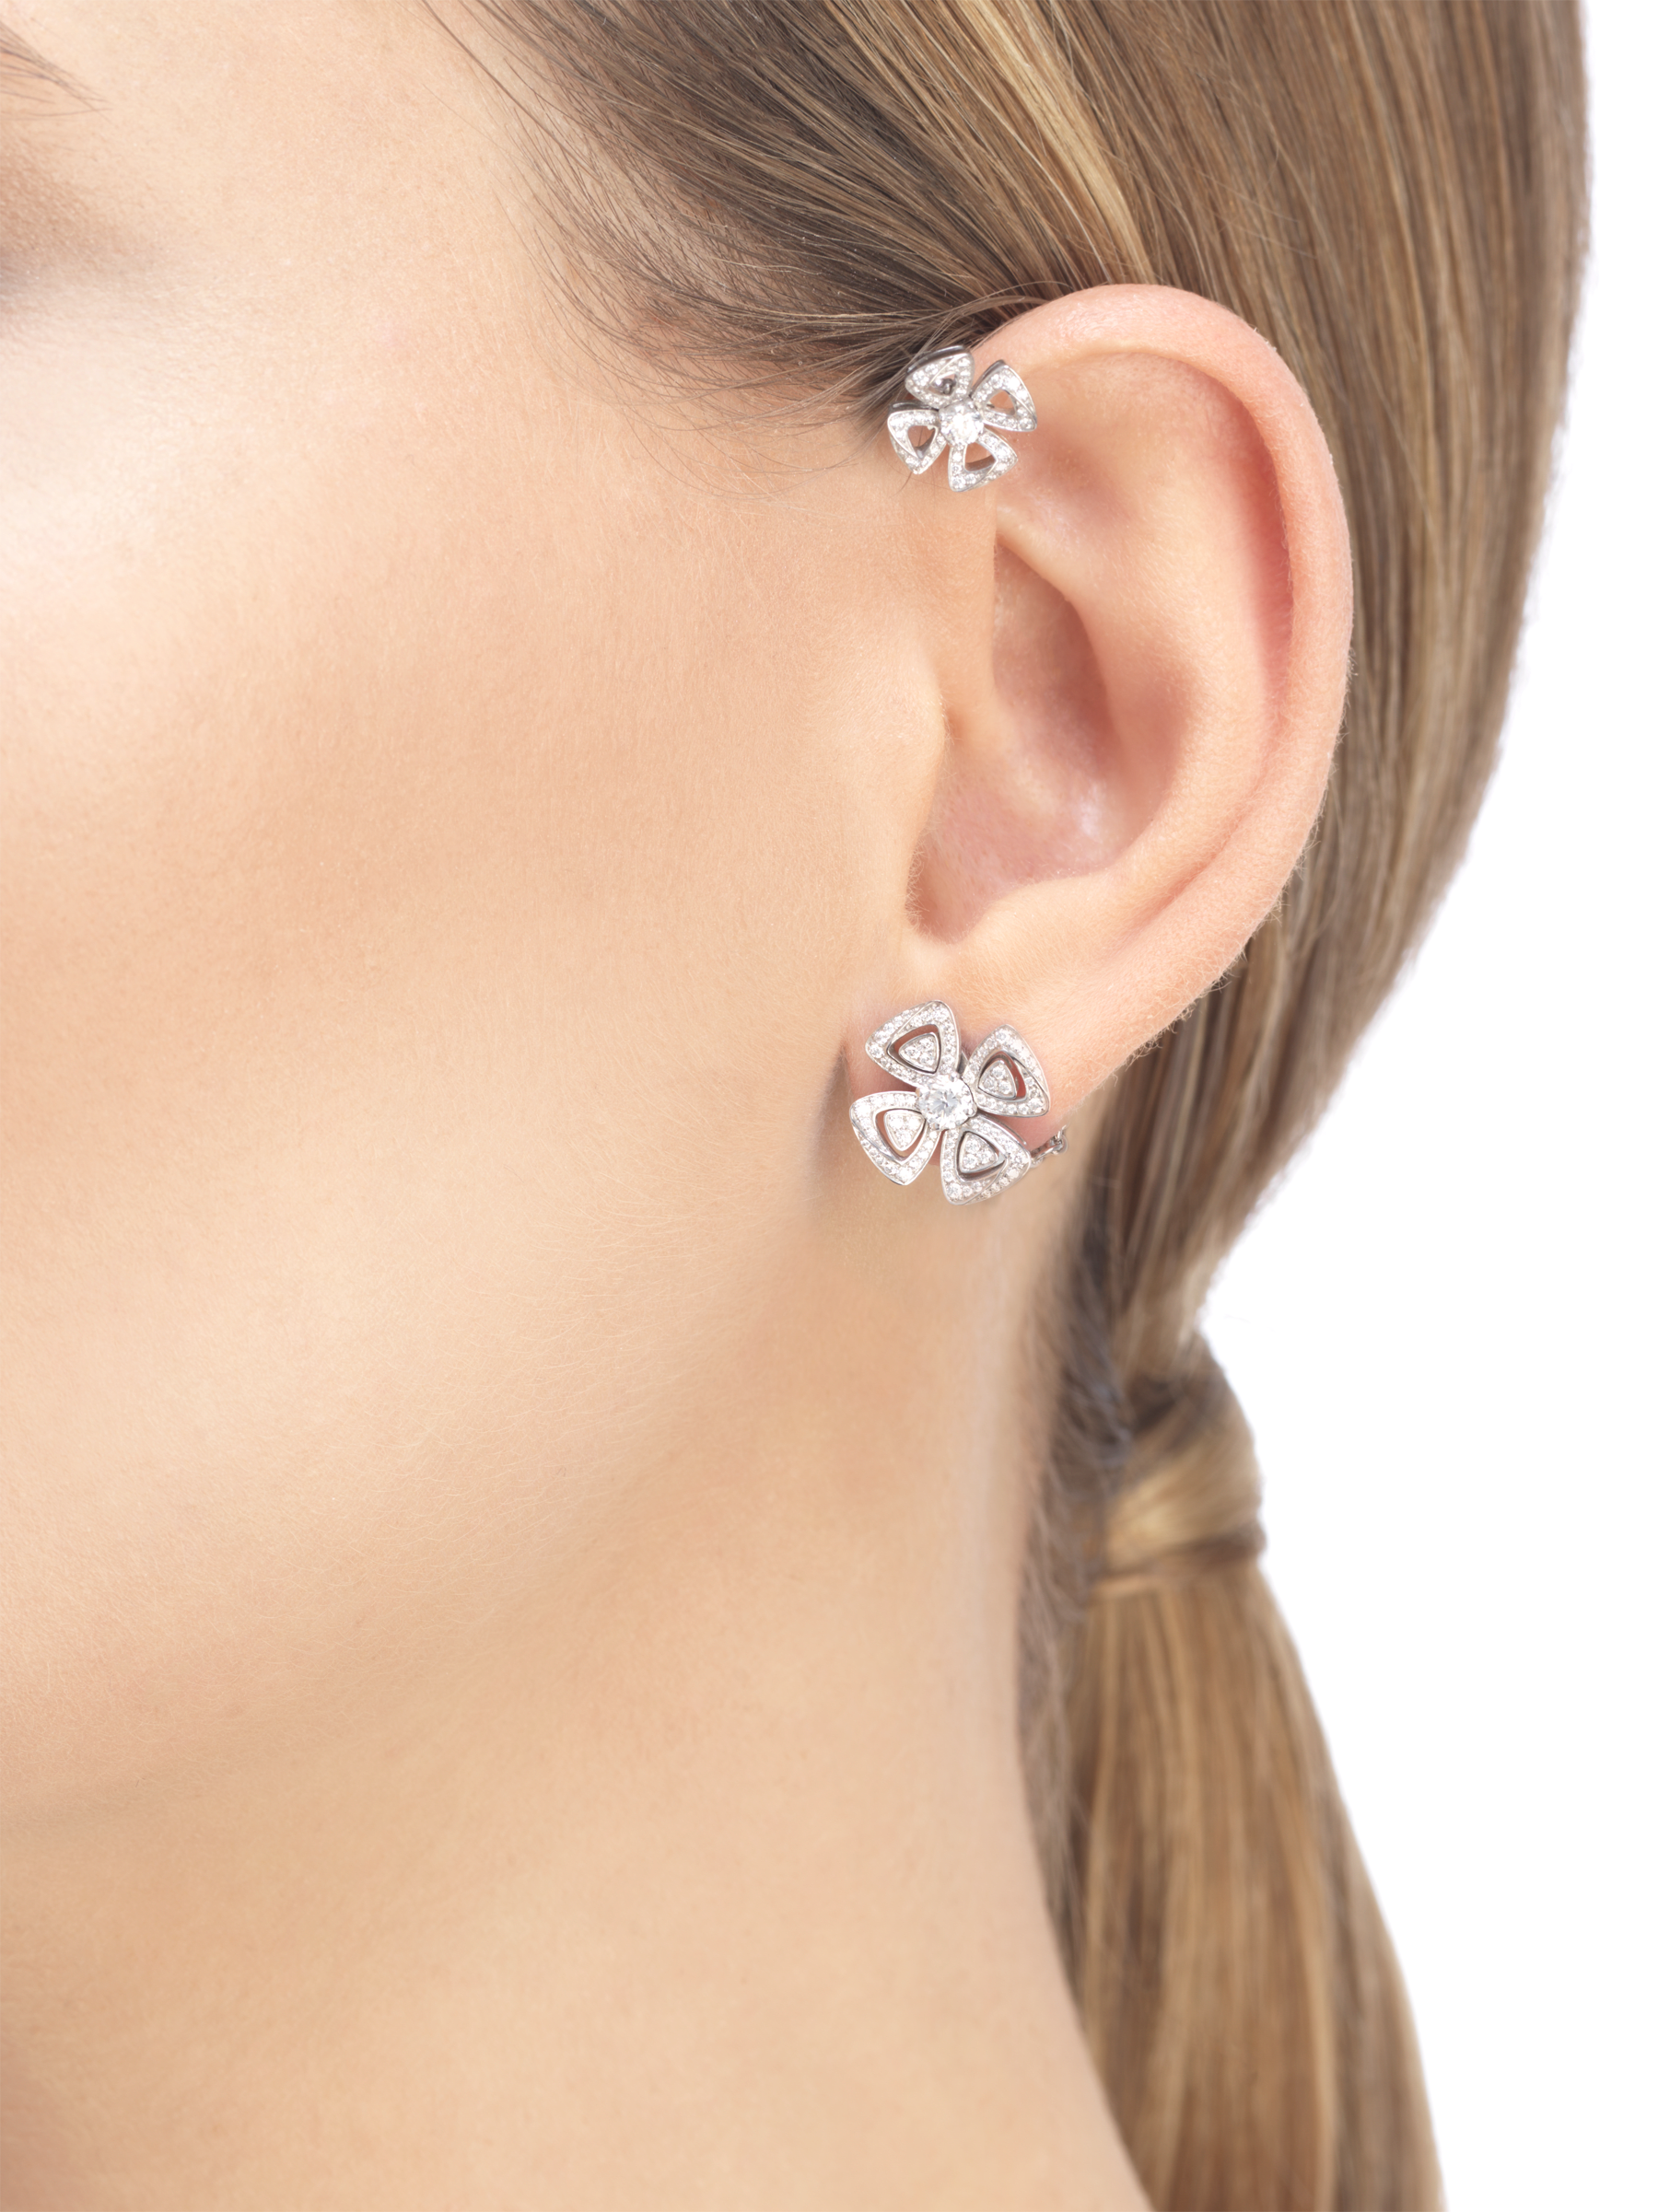 Fiorever 18 kt white gold single earring, set with two central diamonds and pavé diamonds. 354529 image 2